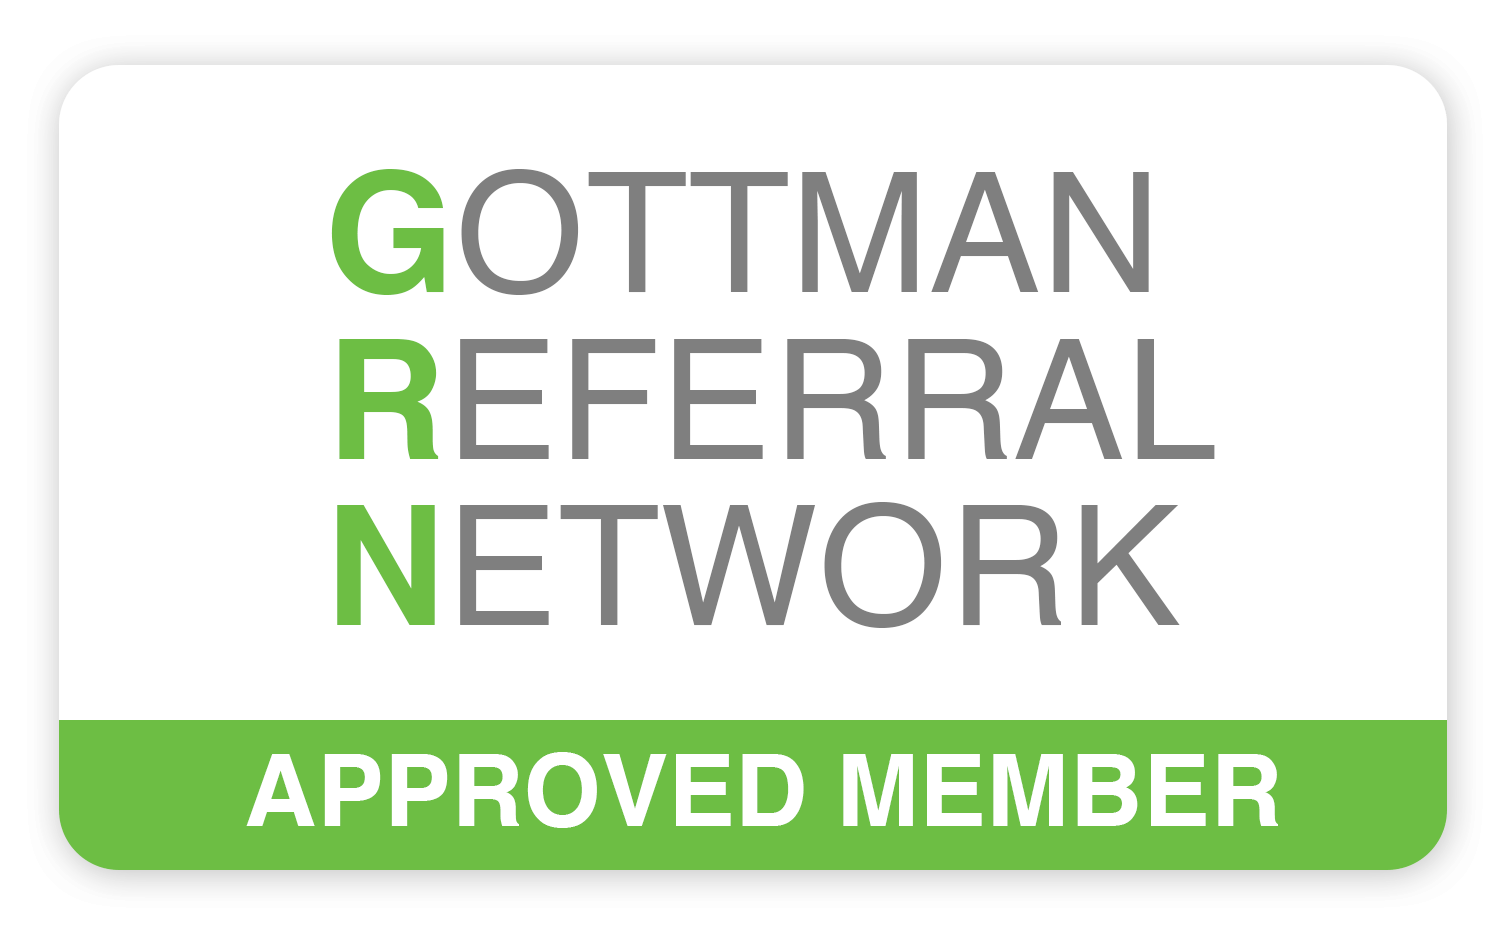 Claire Miner's profile on the Gottman Referral Network